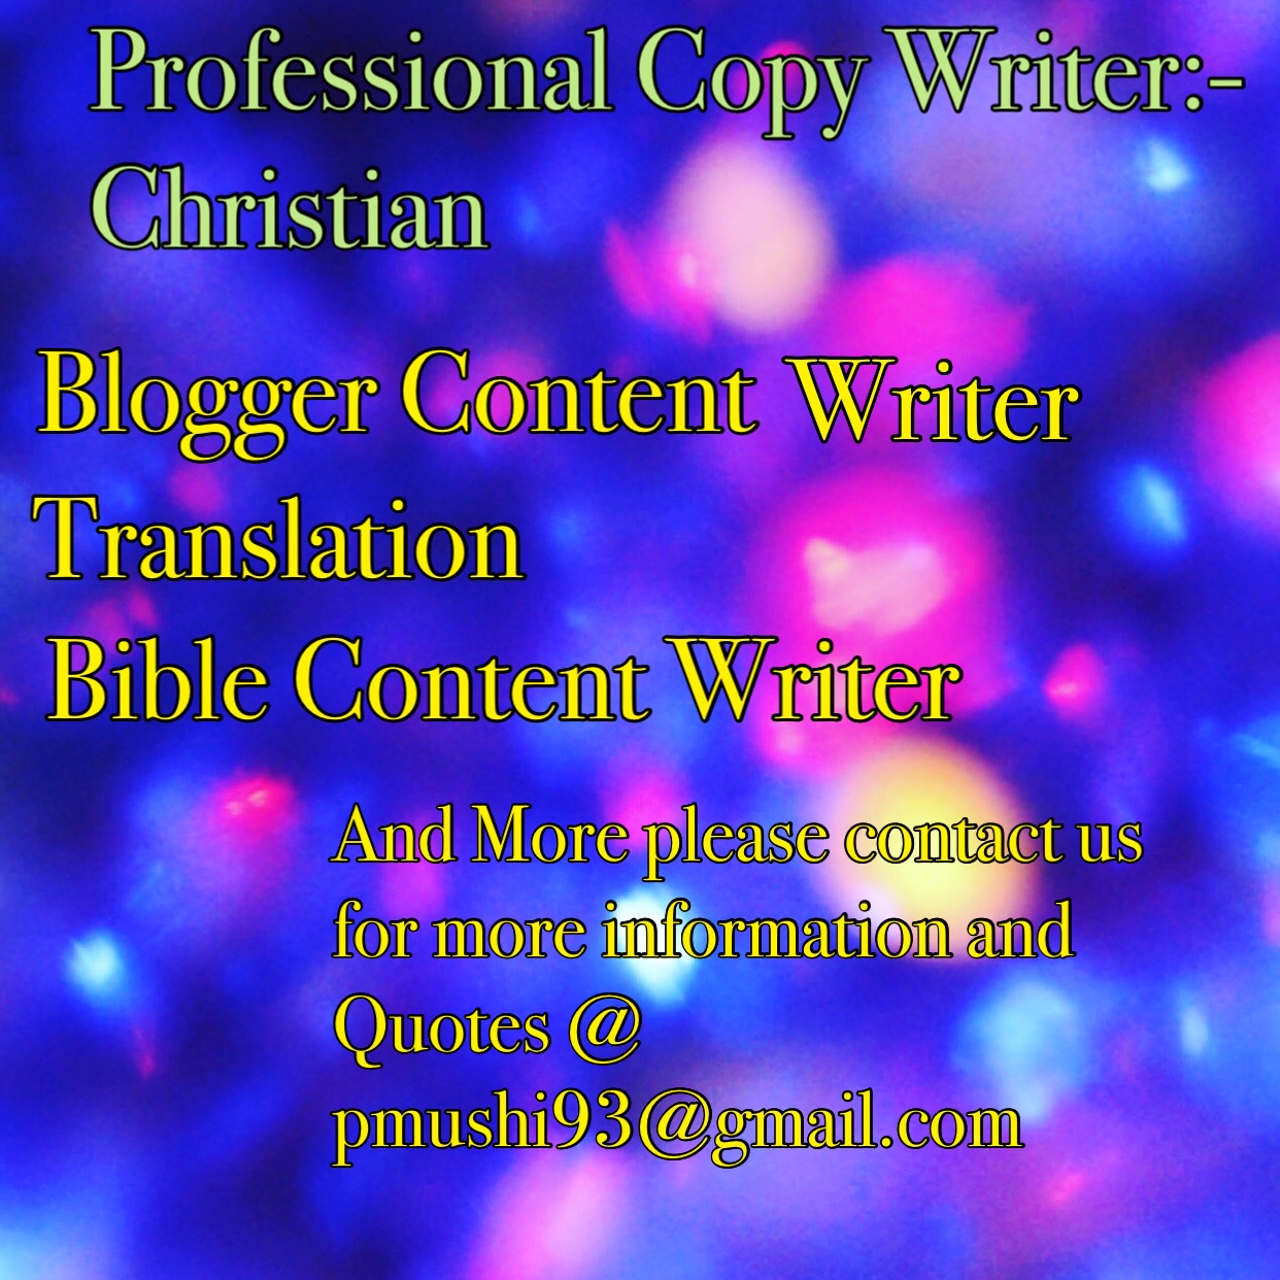 For Proffessional Christian Writer